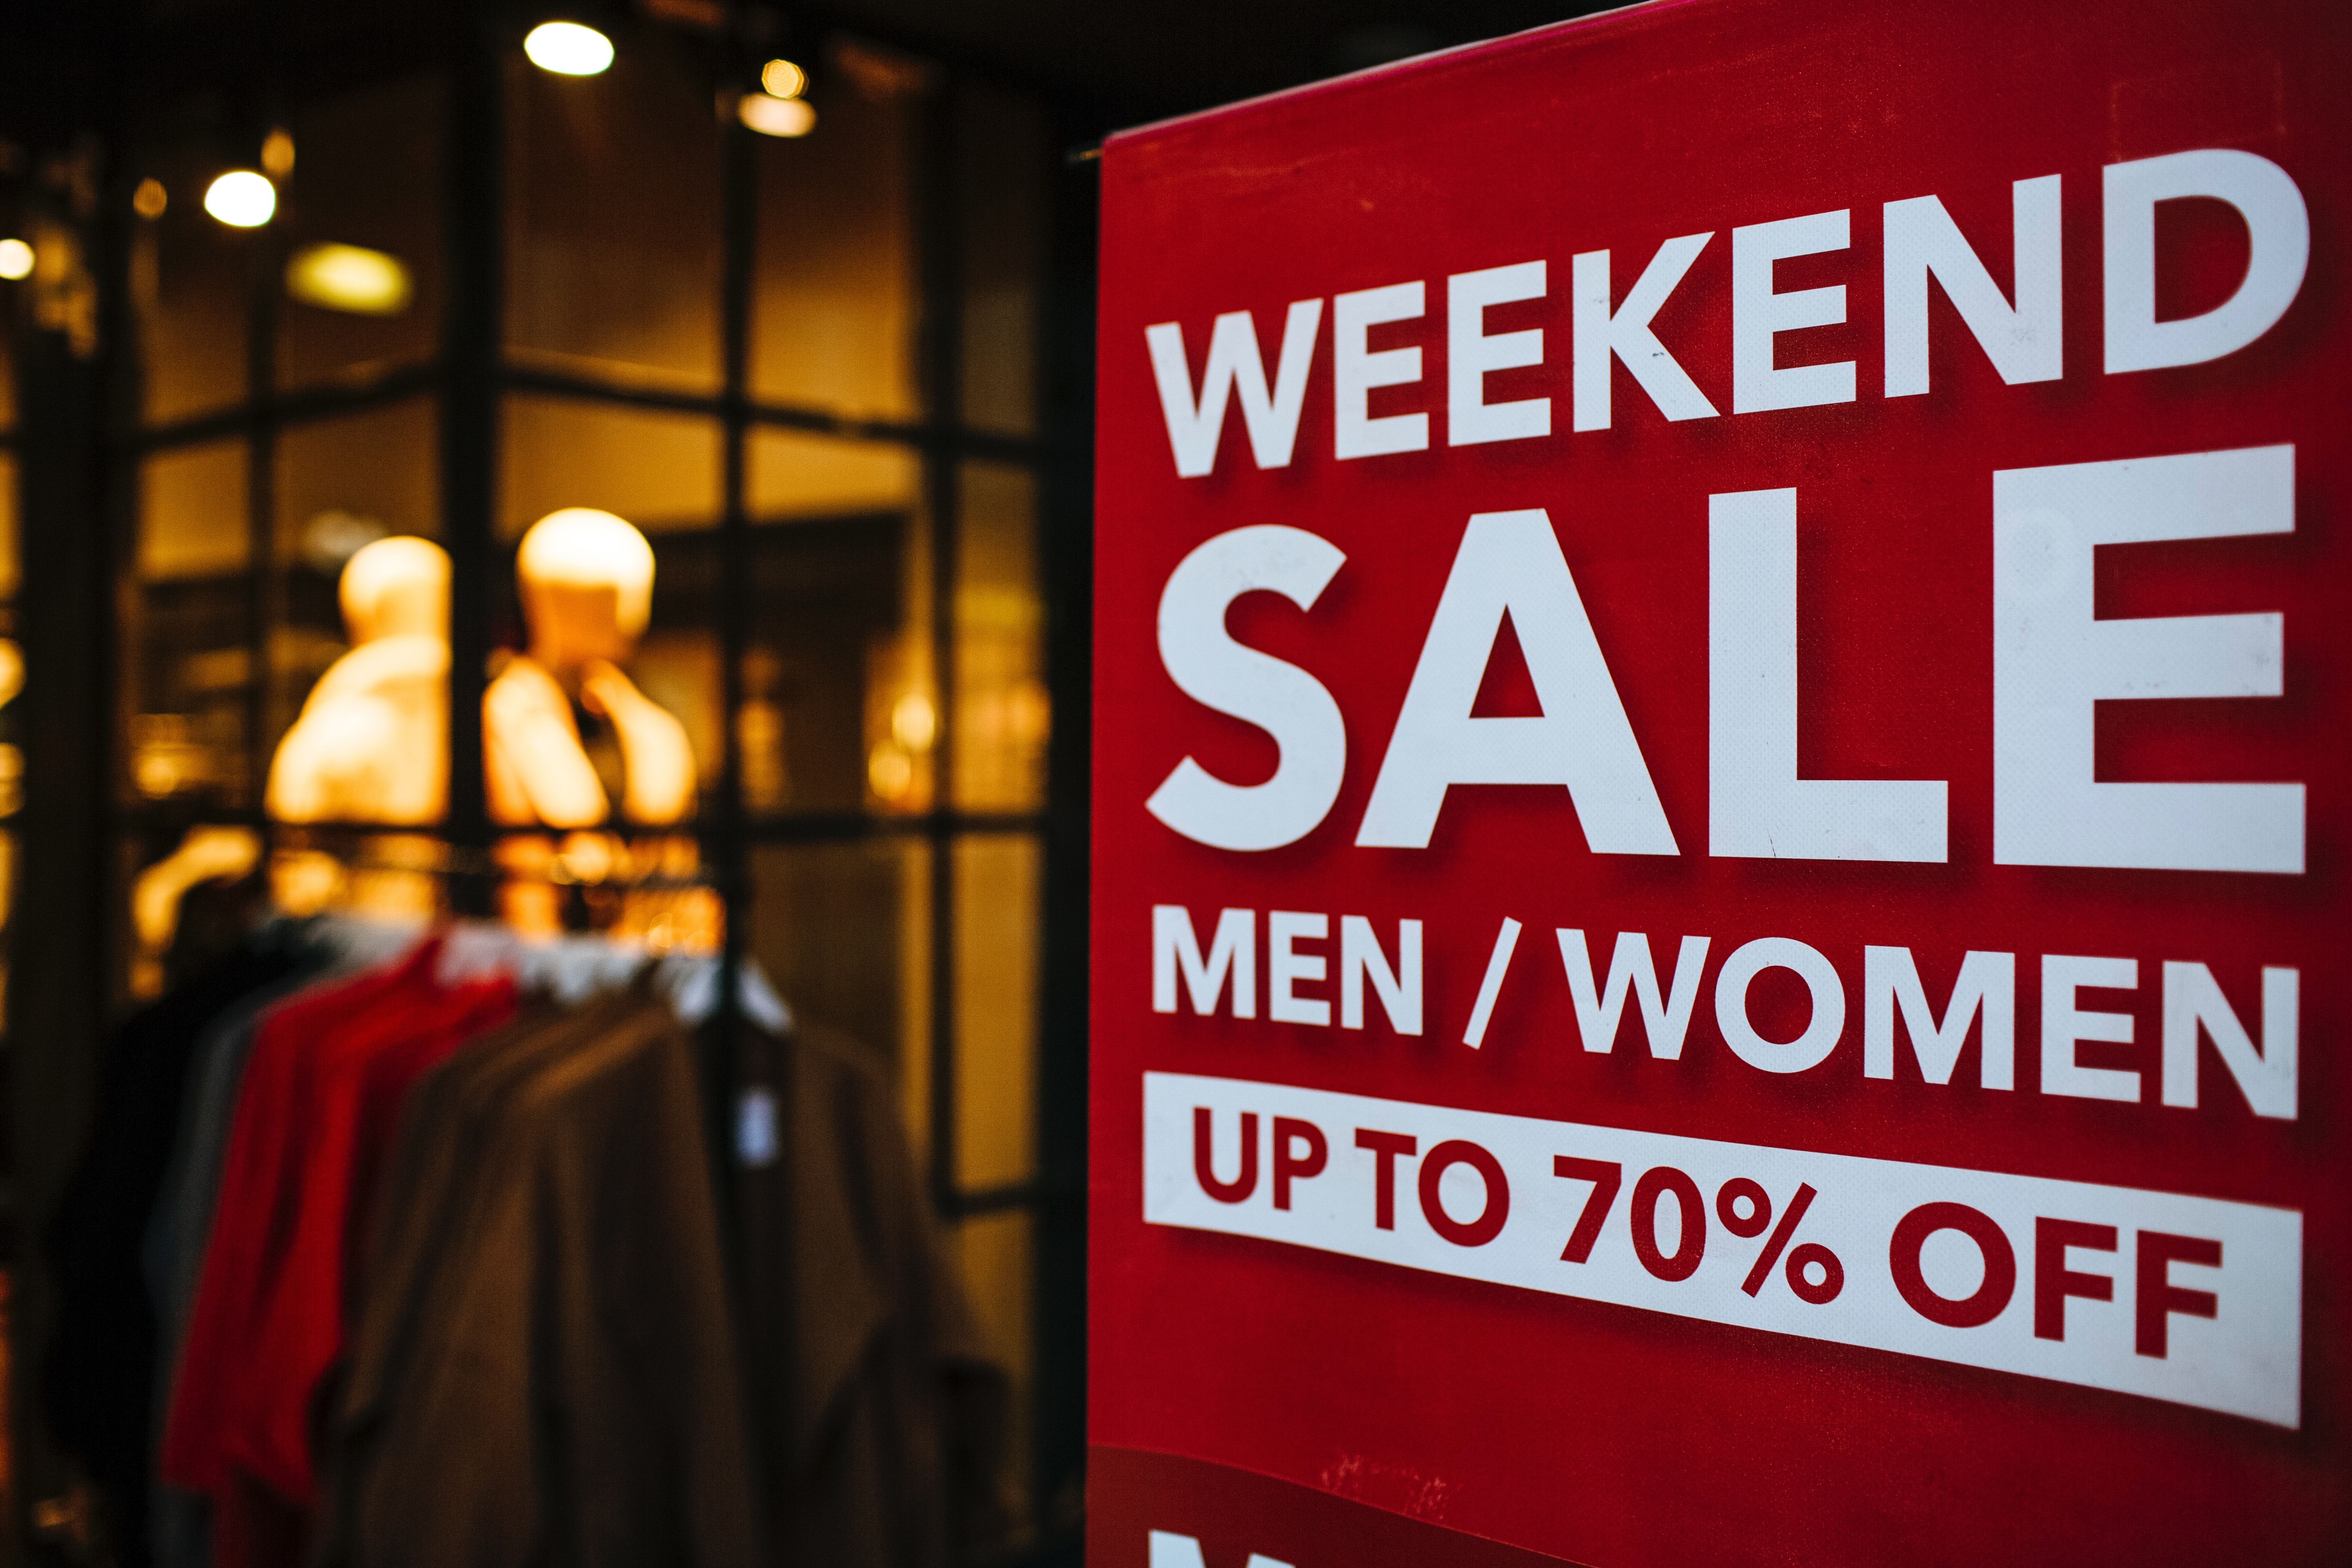 Shopping sale sign outside a store window with labor day weekend discounts